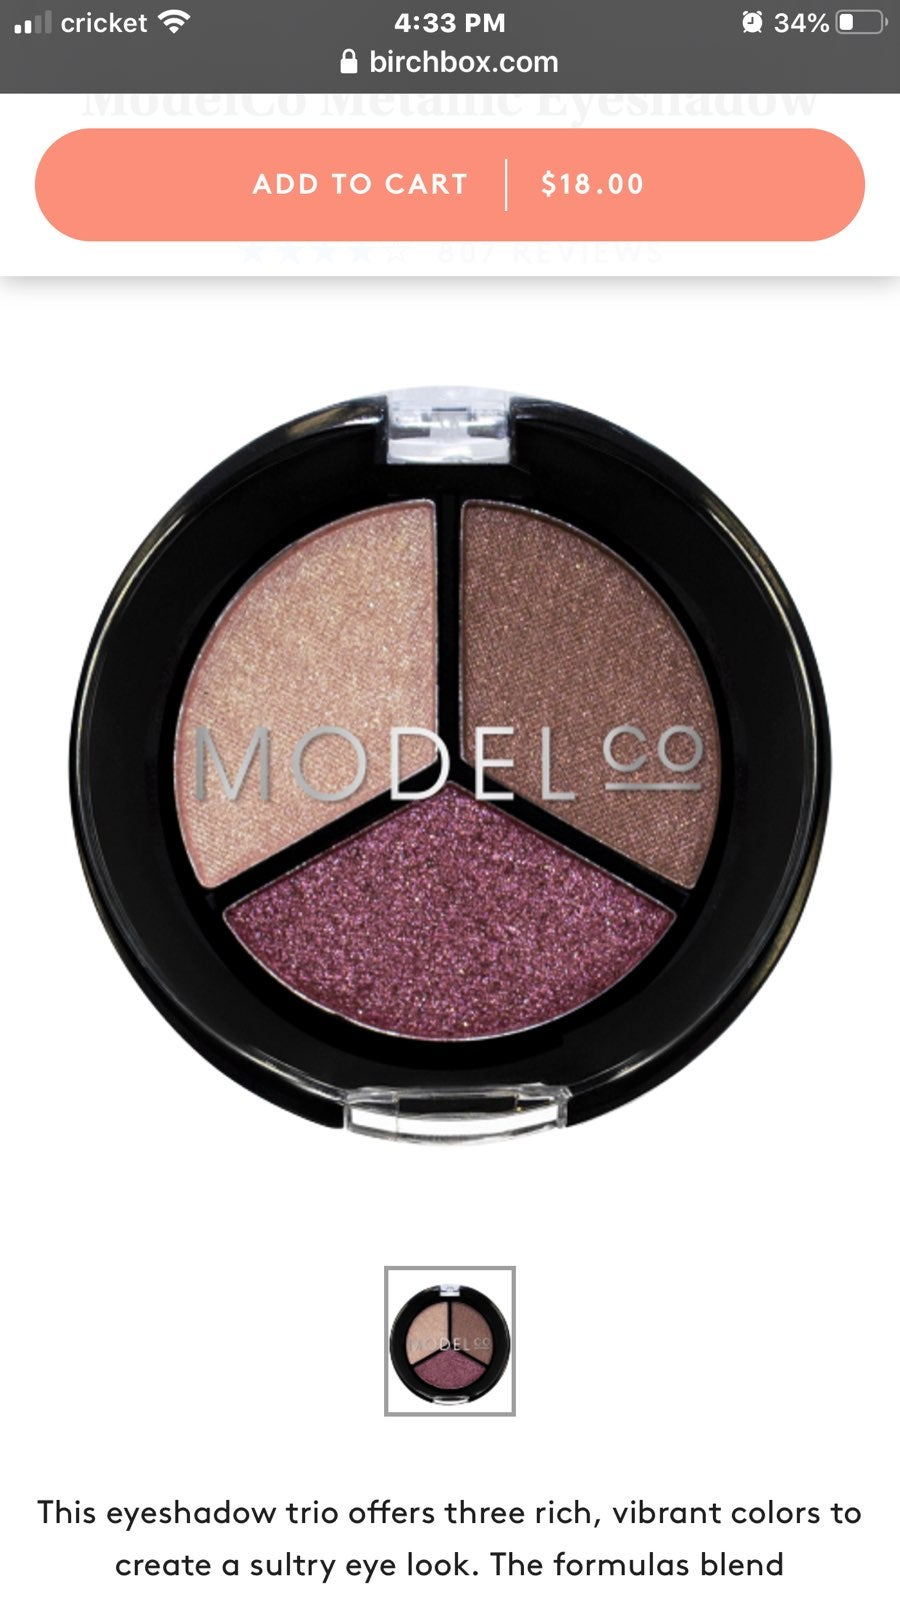 Model Co metallic Eyeshadow trio